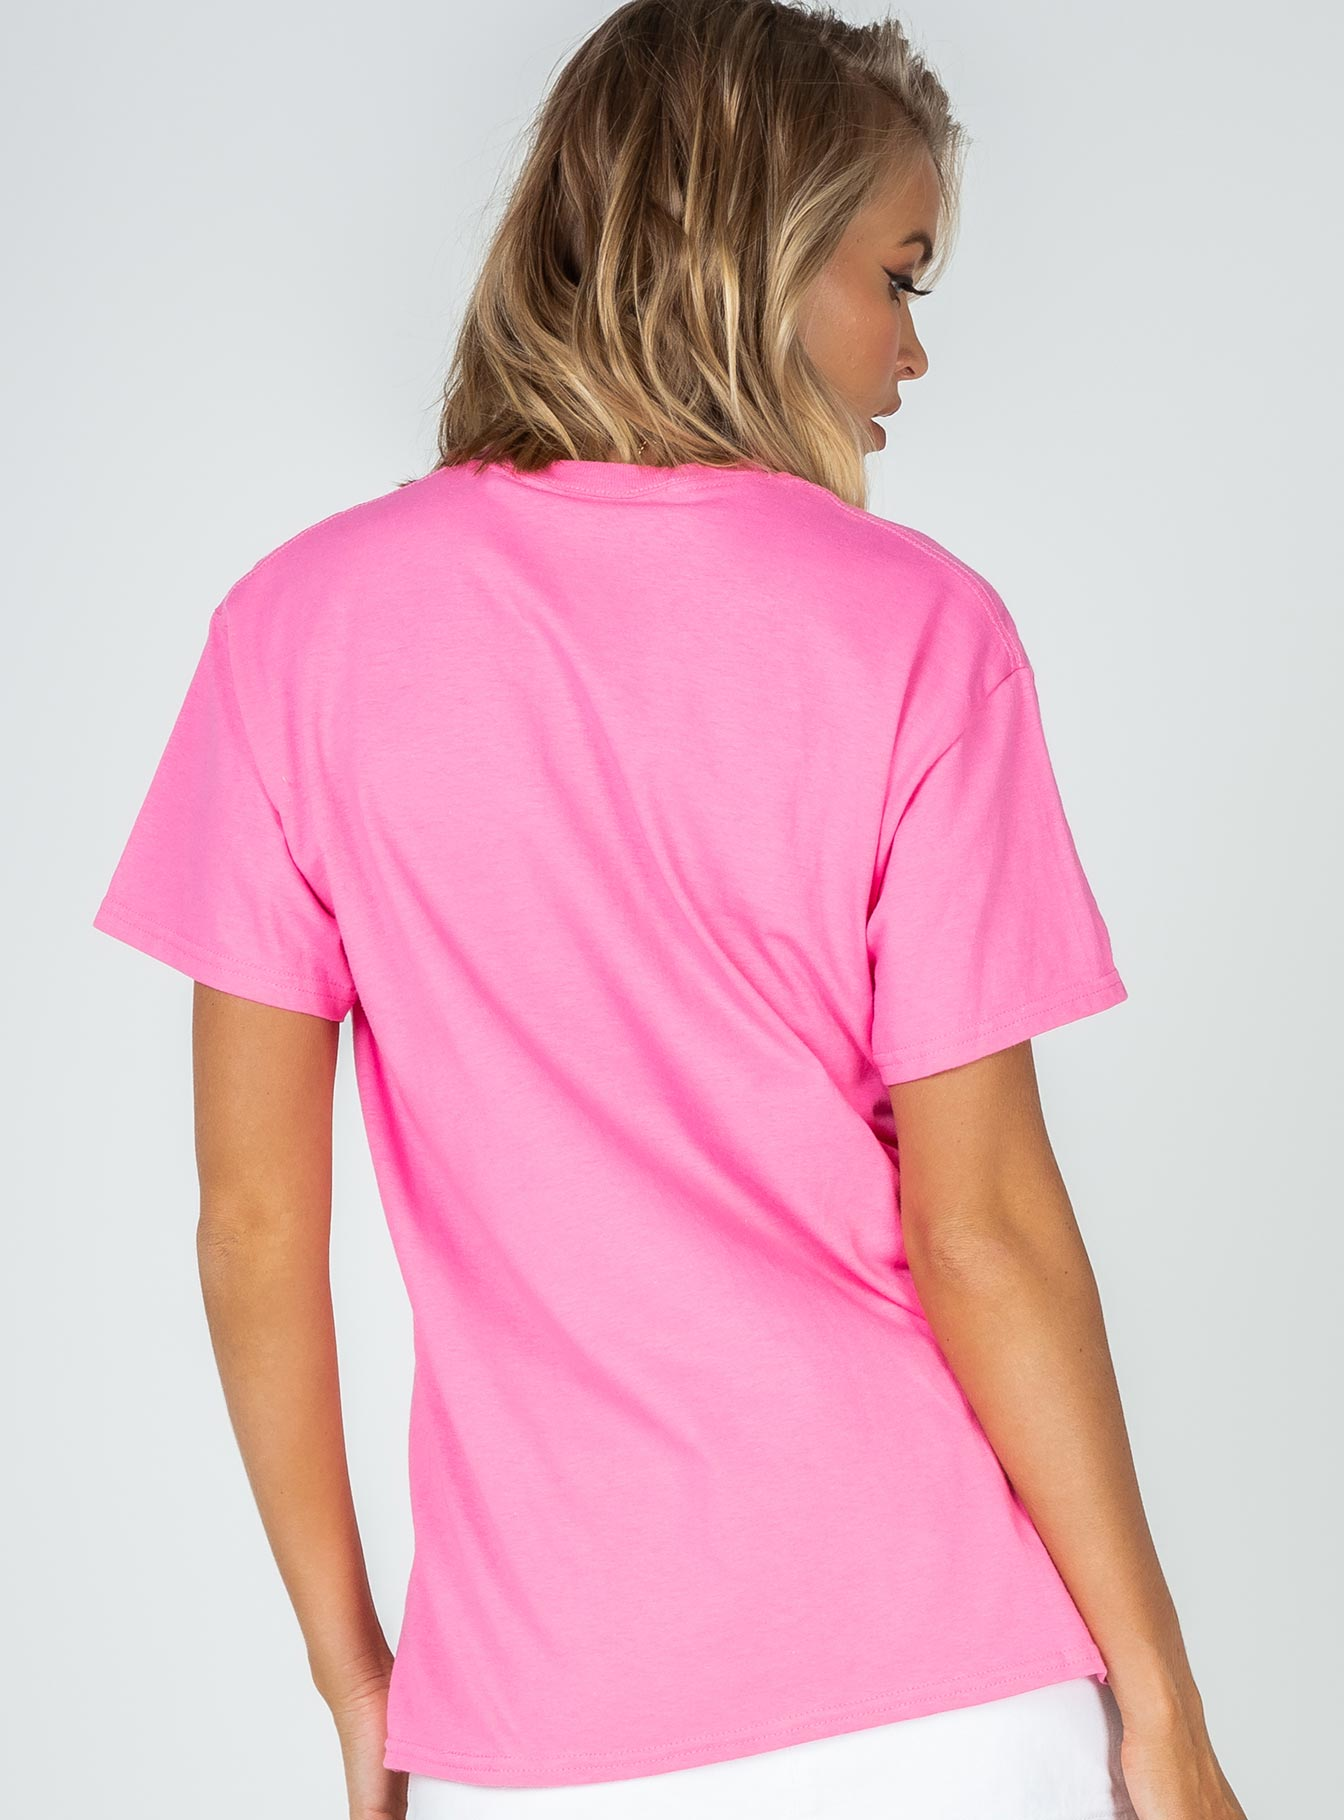 The Ragged Priest Pink Tee With Im Dead Embroidery